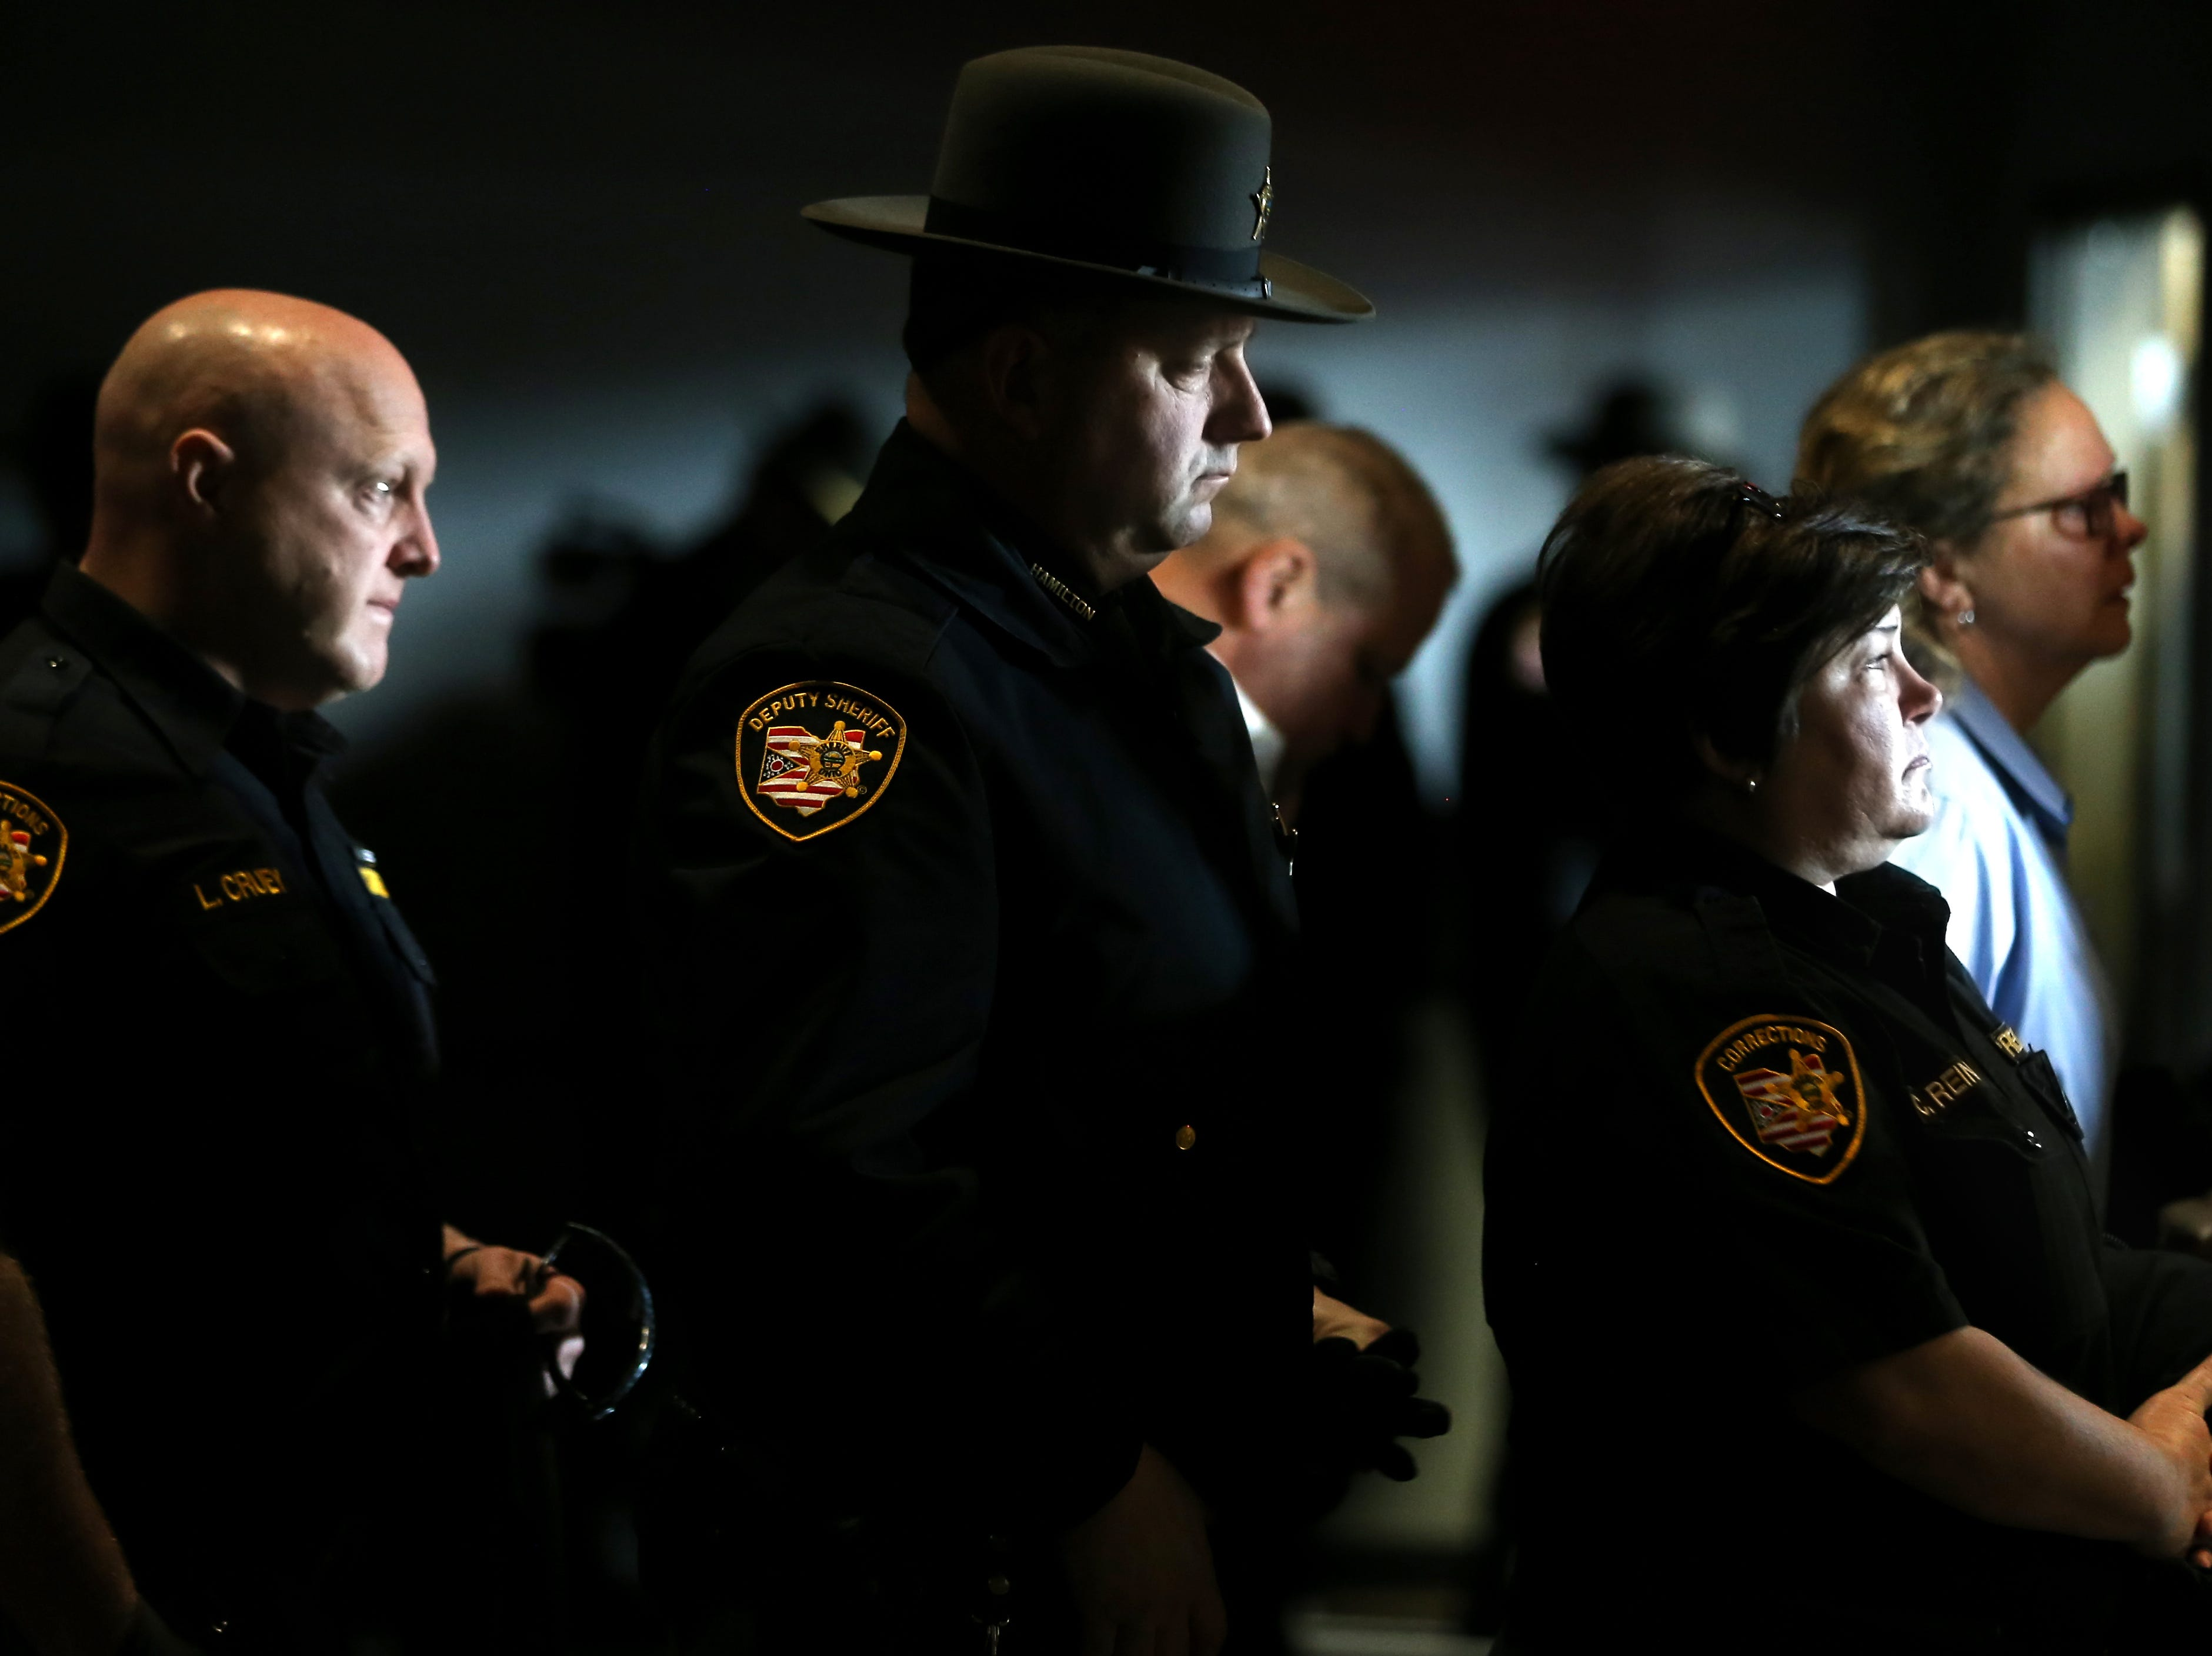 Mourners exit at the conclusion of funeral services for Clermont County Sheriff's Detective William Lee Brewer Jr., Friday, Feb. 8, 2019, at Mount Carmel Christian Church in Union Township, Ohio. Brewer, a 20-year veteran of the Clermont County Sheriff's Office, died in the line of duty. He was shot Feb. 2 during a standoff. Brewer, 42, of Pierce Township, is survived by his wife, Jamie, and a 5-year-old son, Braxton. (Kareem Elgazzar/The Cincinnati Enquirer)